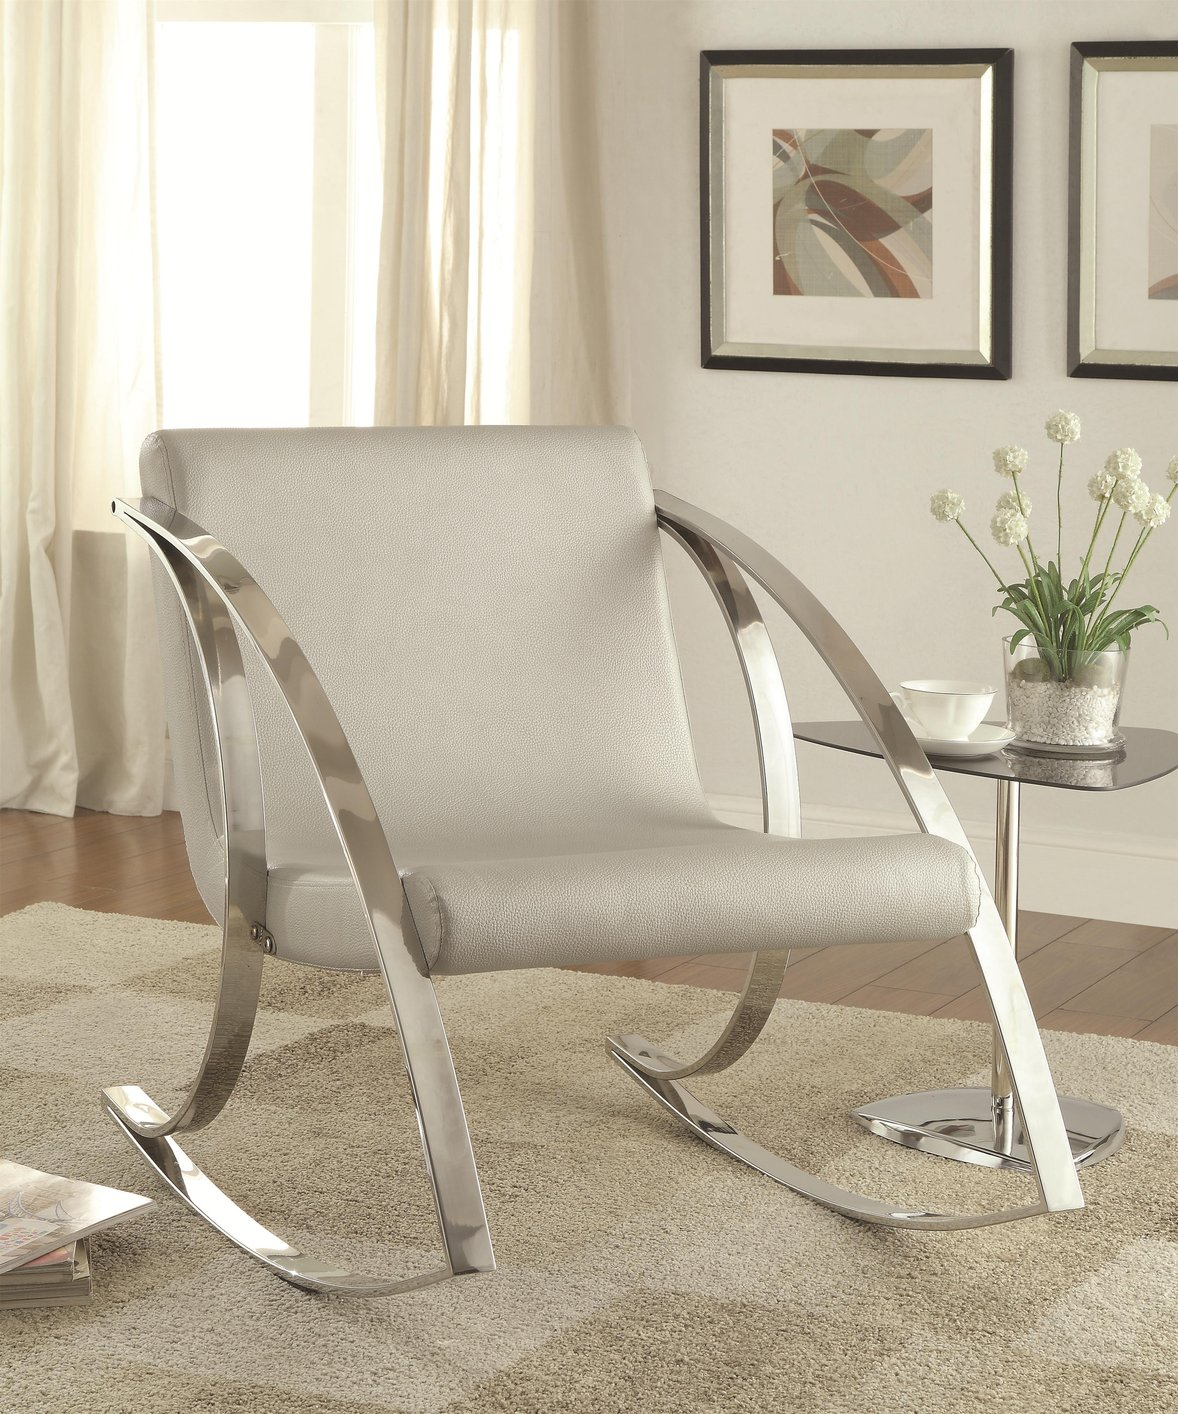 Grey Rocking Chair Grey Metal Rocking Chair Steal A Sofa Furniture Outlet